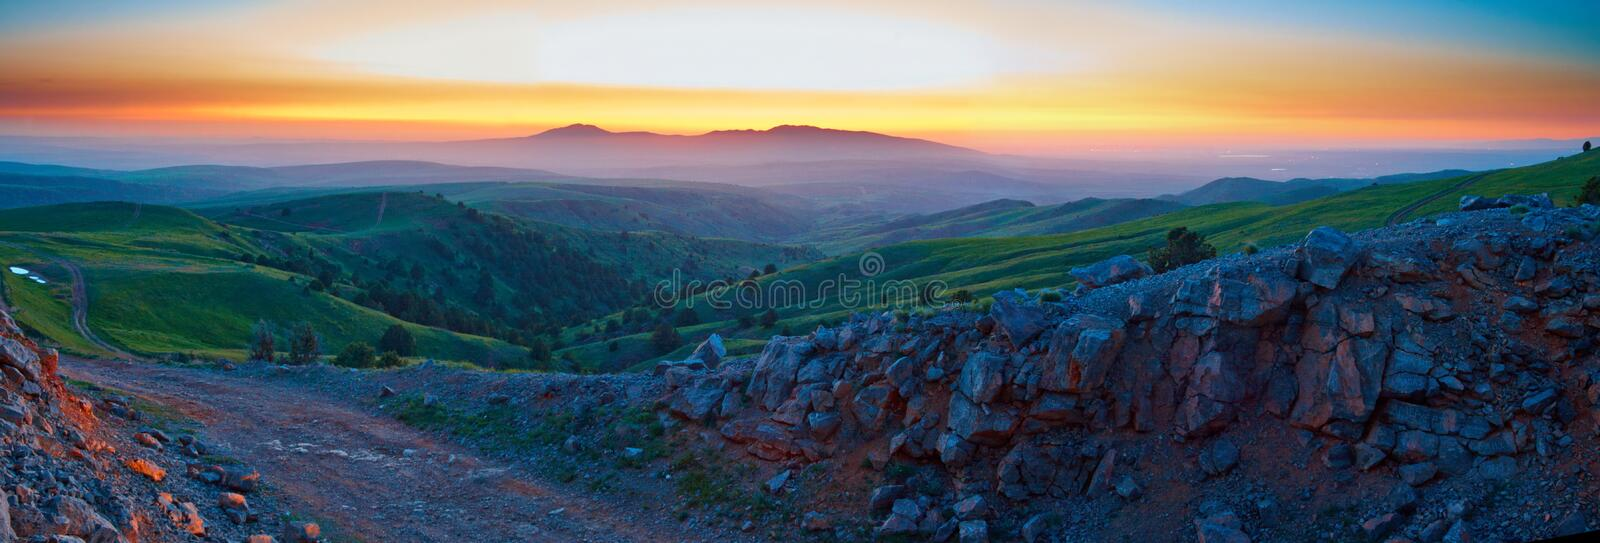 Dawn in mountains stock images